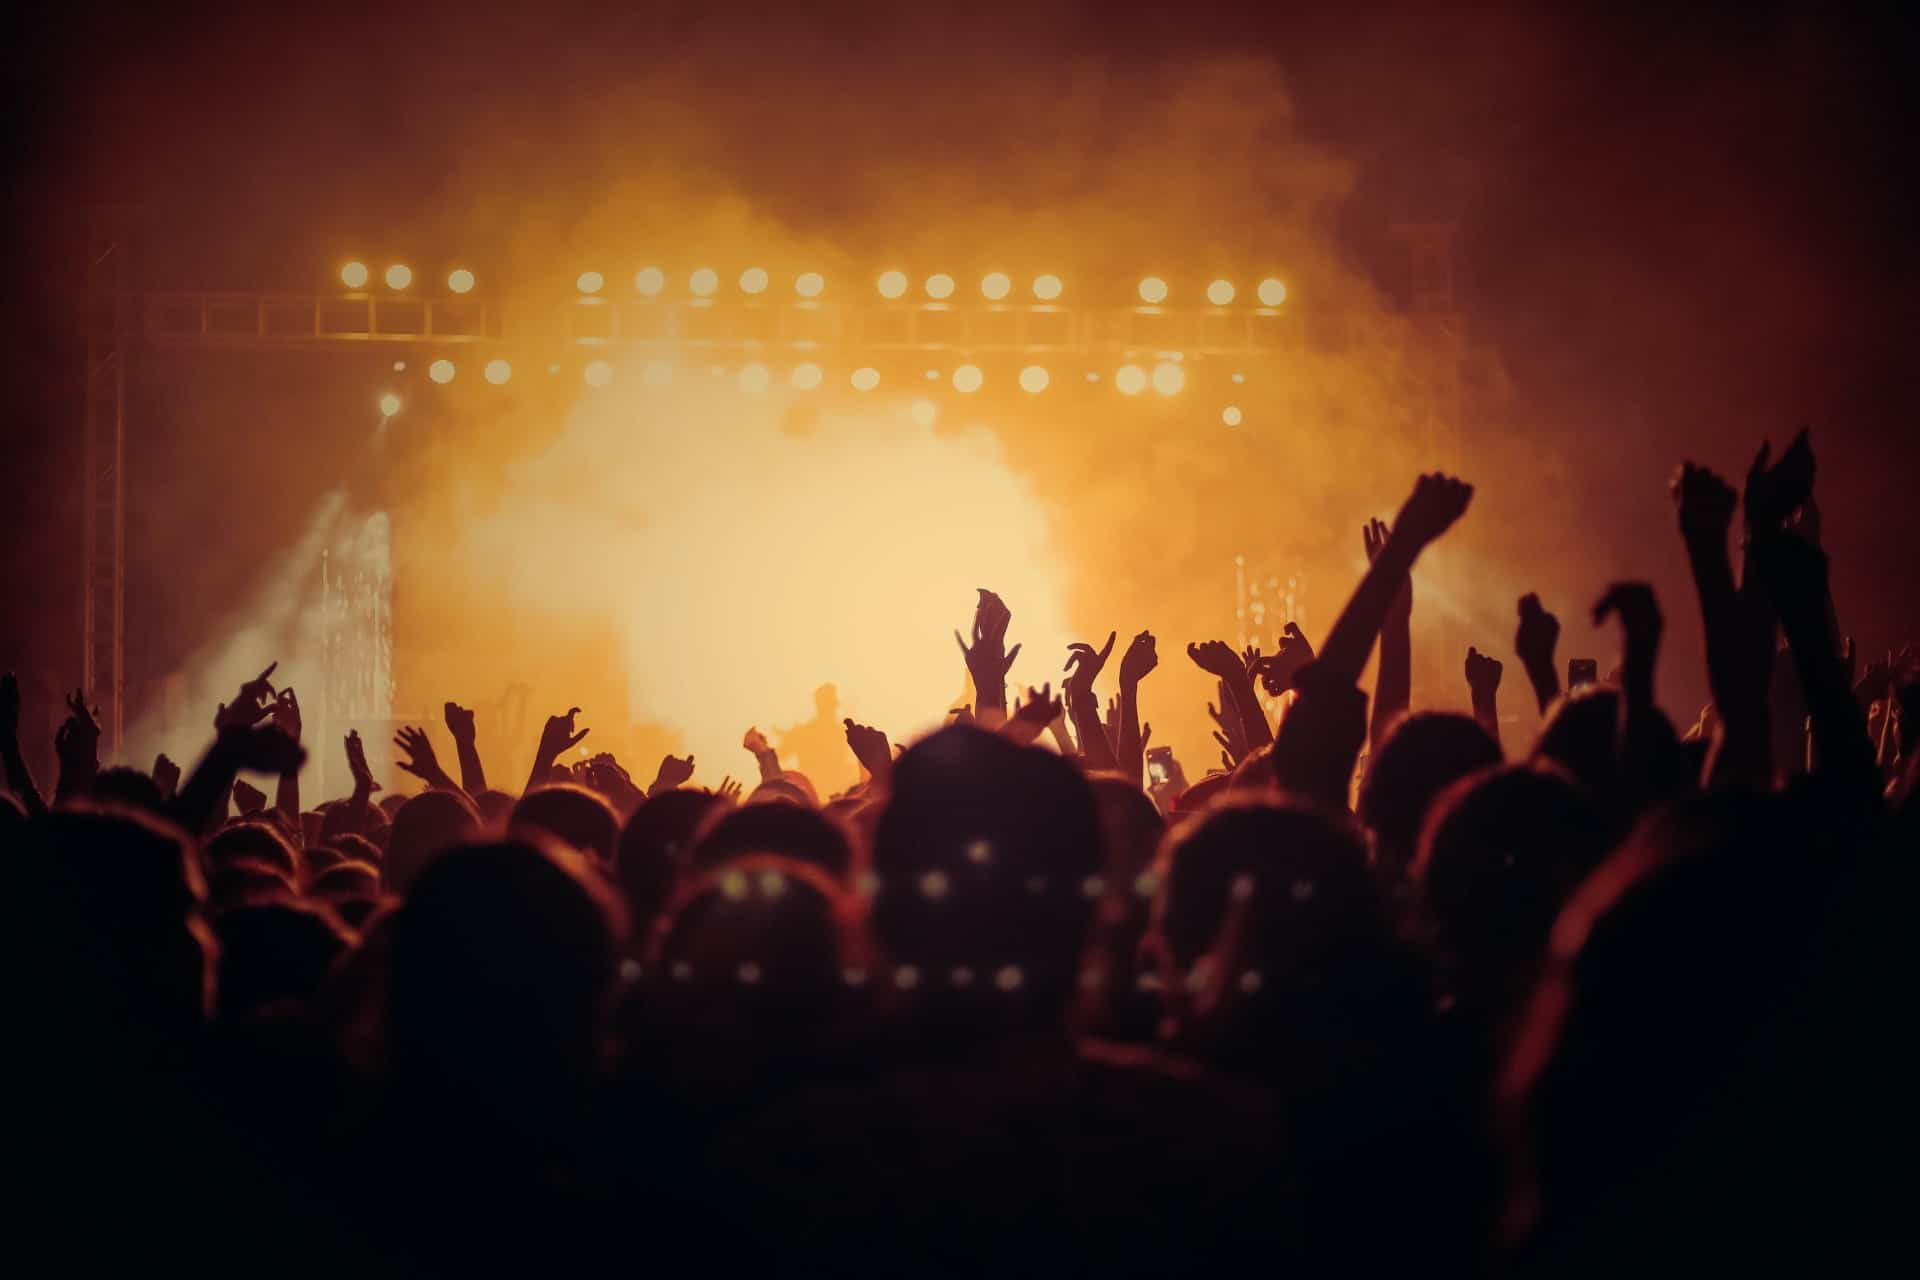 CONCERTS, SPECTACLES